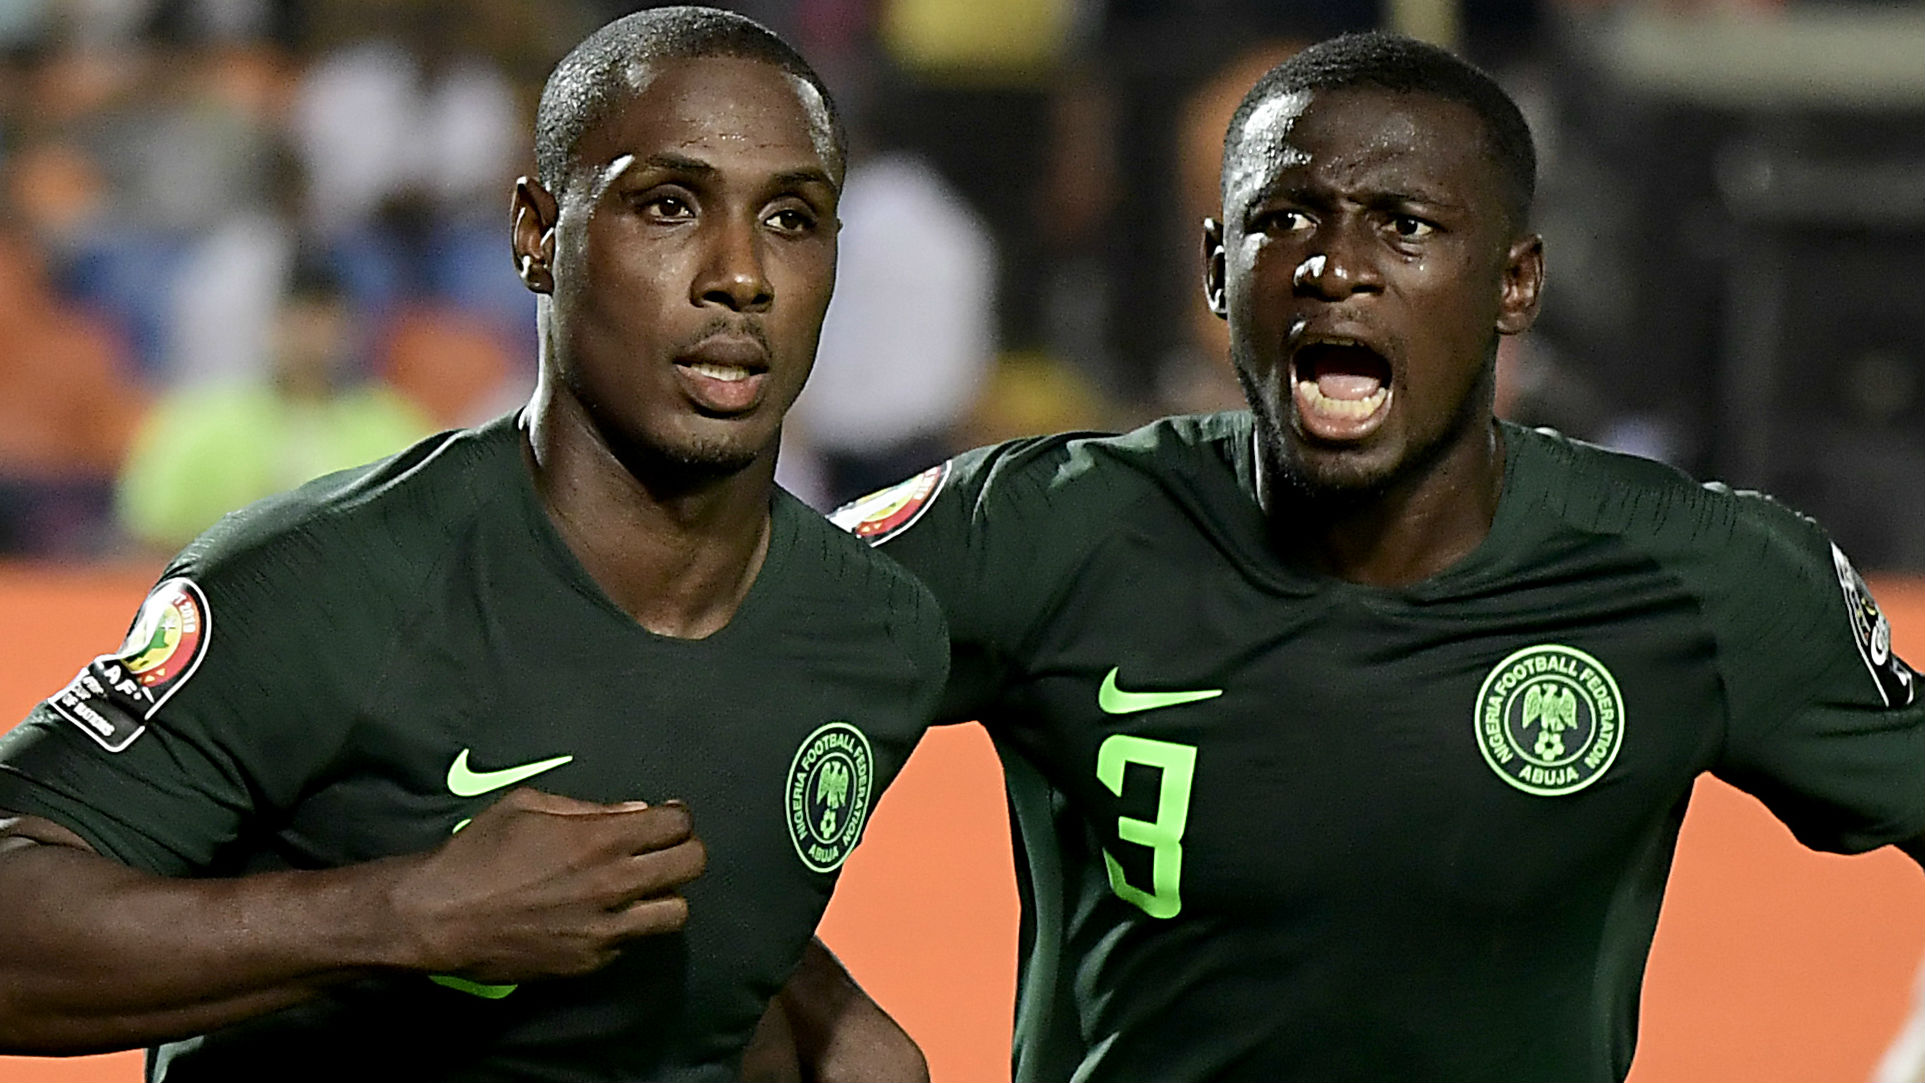 AFCON 2019: Nigeria beat Tunisia, win bronze